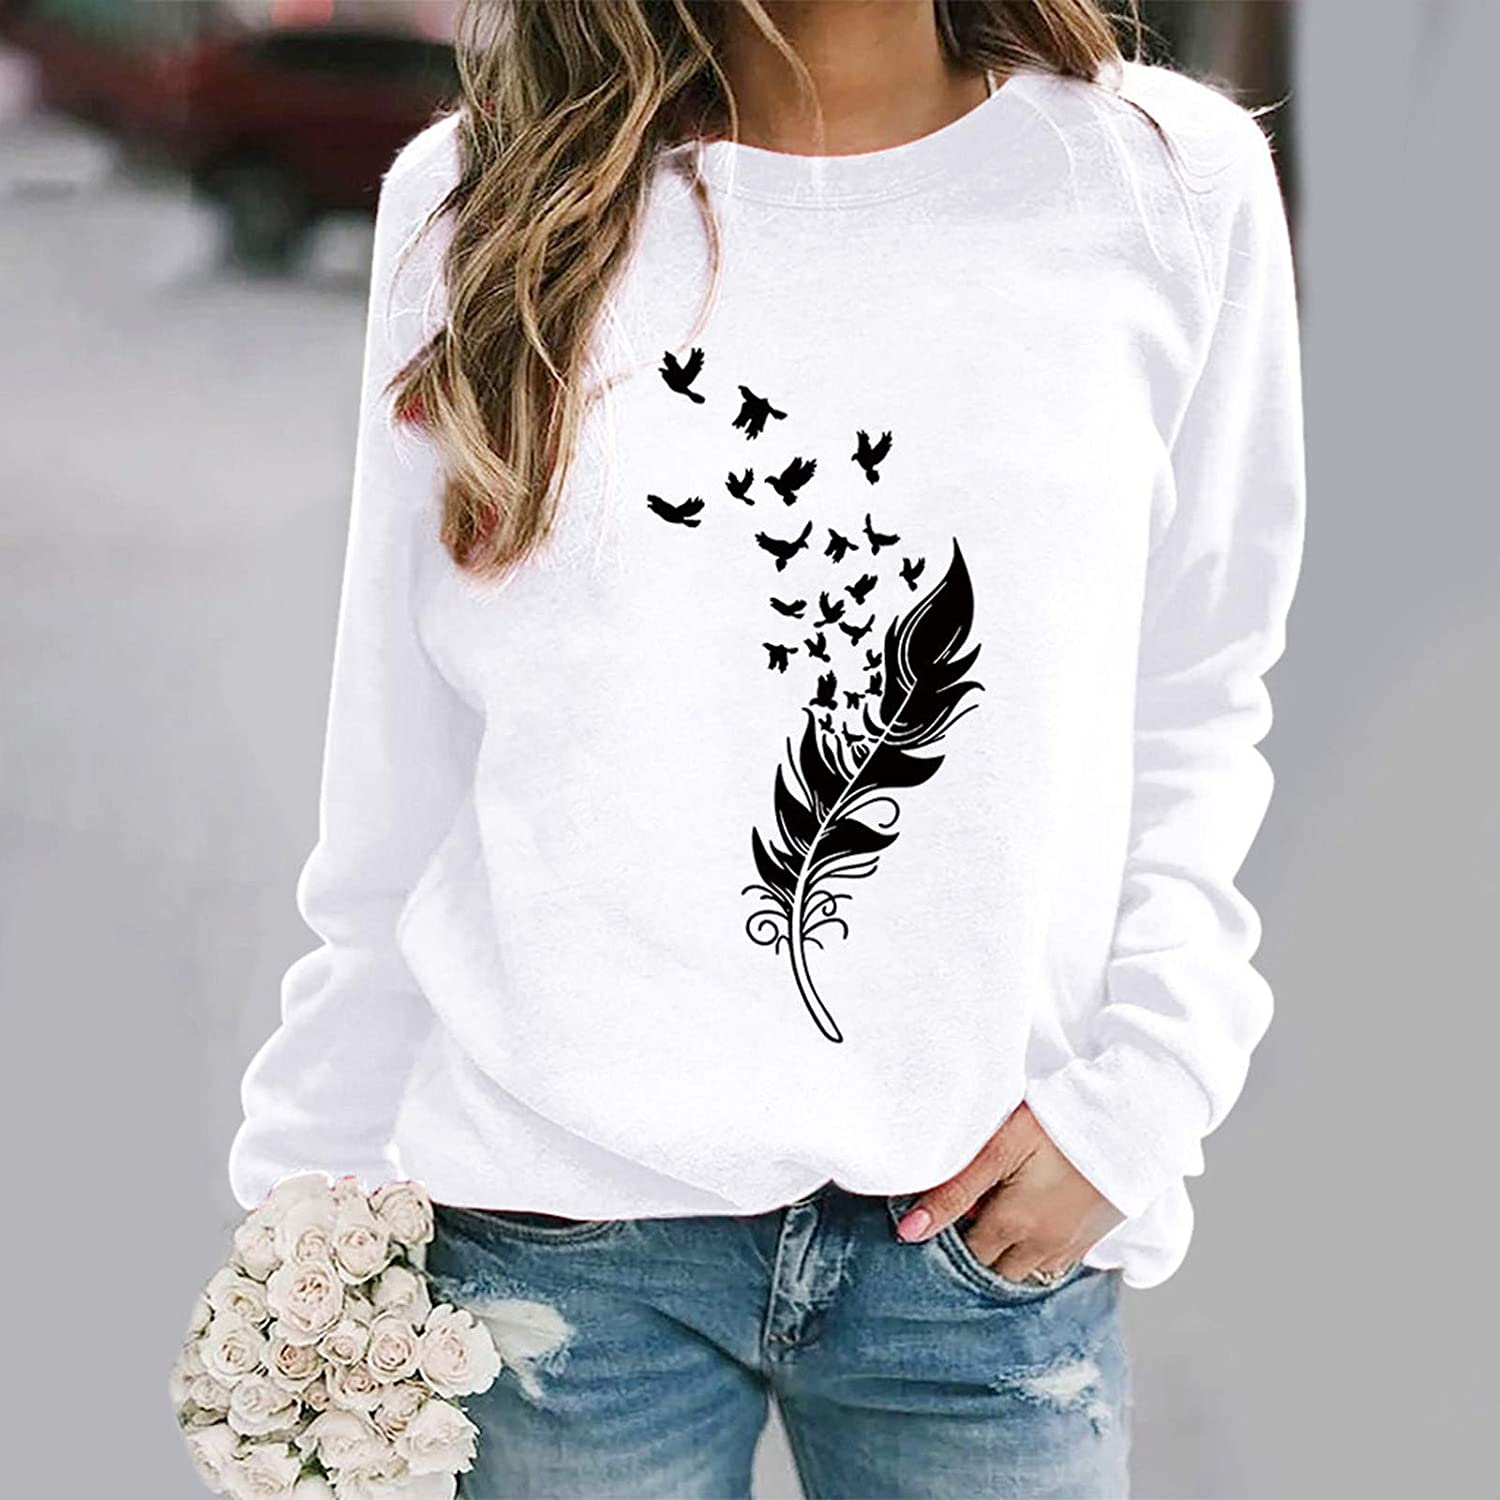 Sweatshirts for Women,WomenFeather Print Sweatshirts Tops Long Sleeve Crewneck Tops Plus Size Pullover Shirts